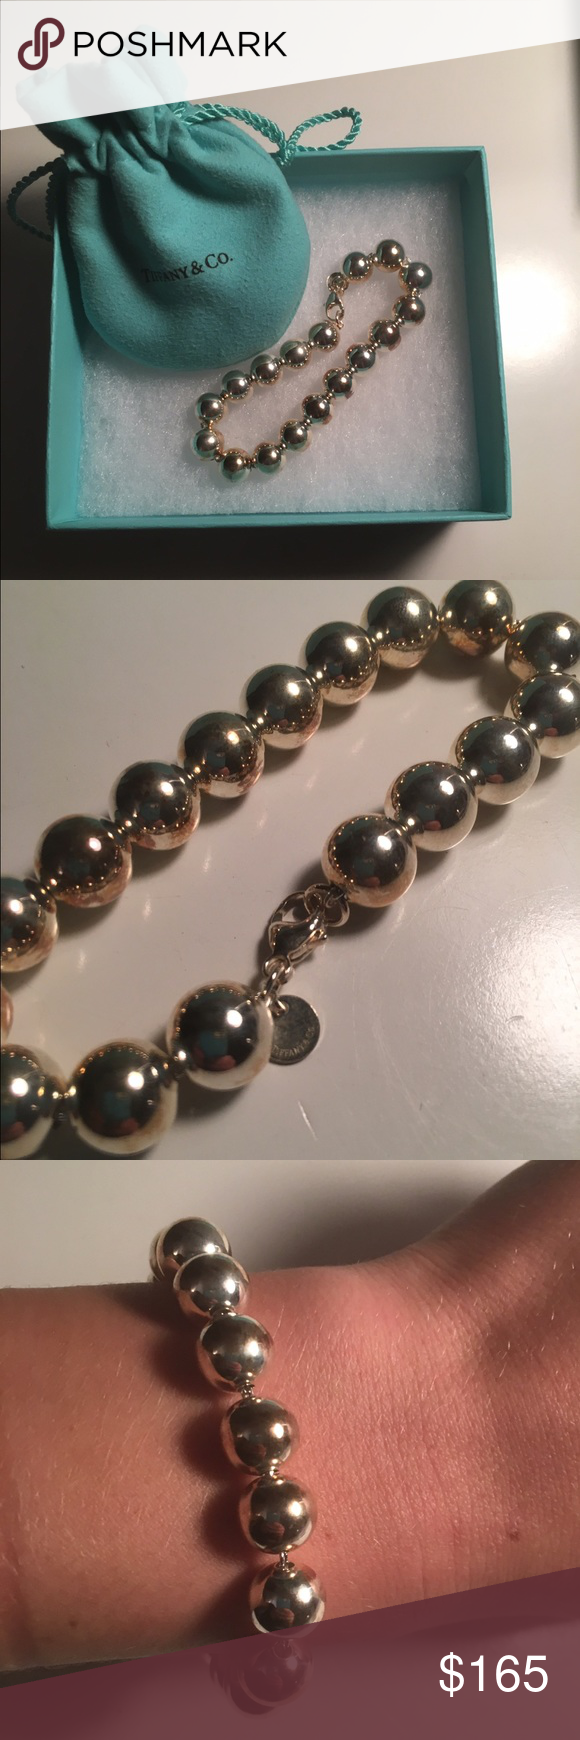 Tiffany bead bracelet in sterling silver Never worn! In perfect condition. Tiffany & Co. Jewelry Bracelets